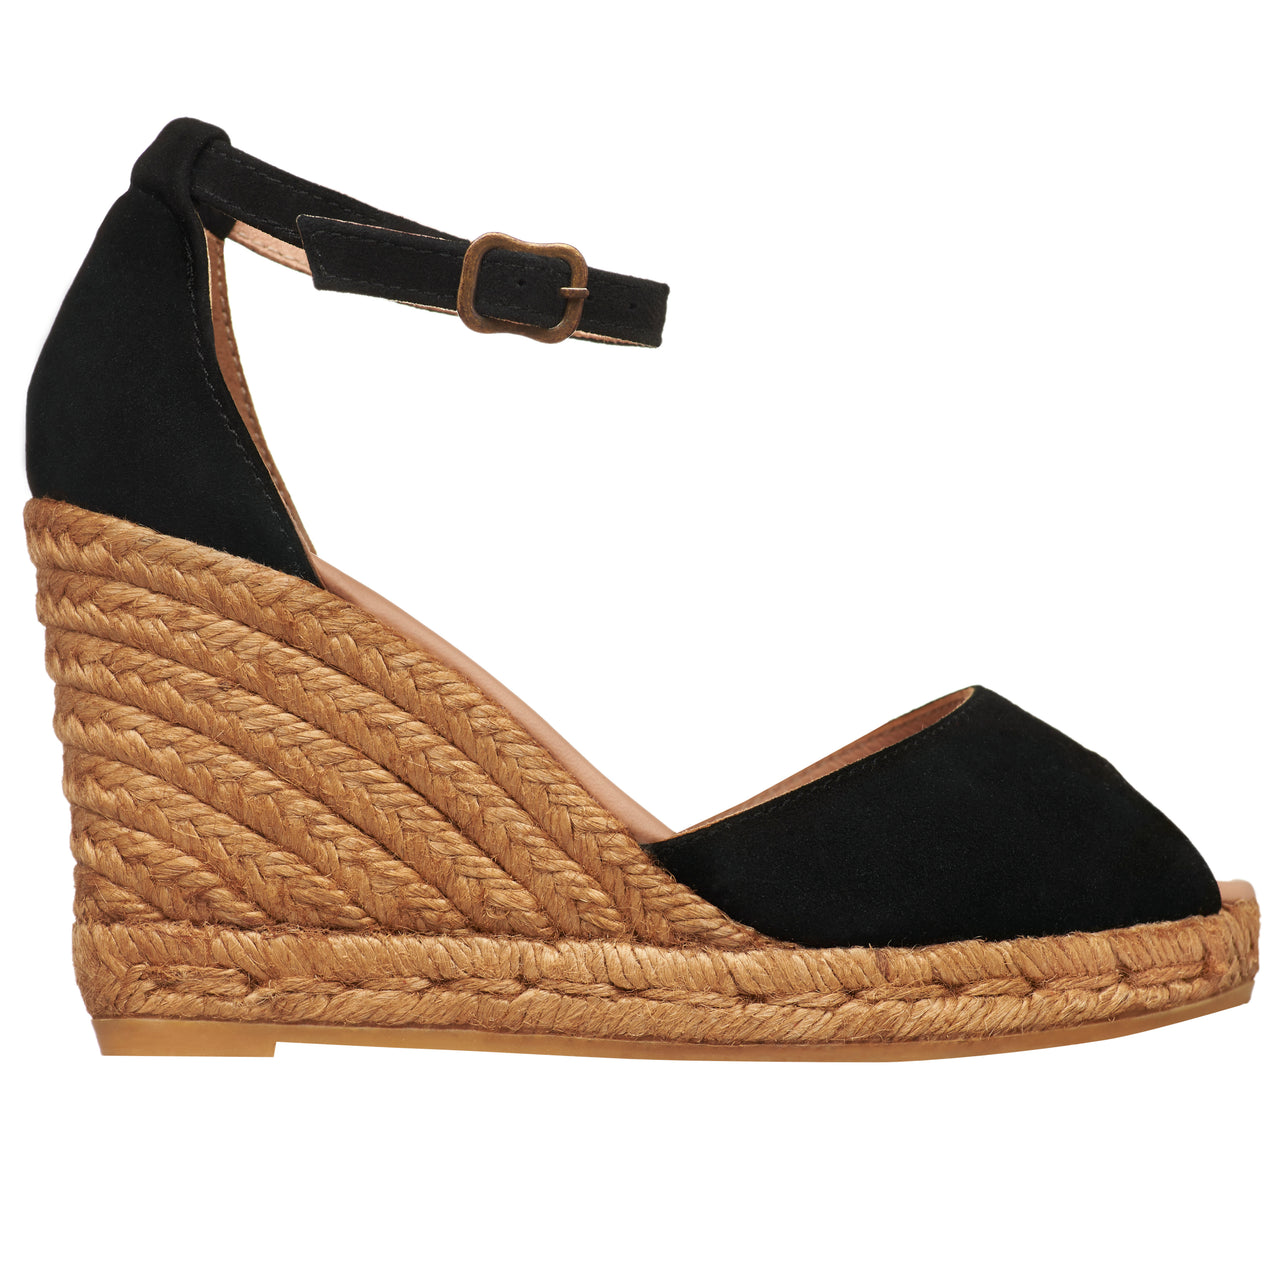 CADAQUES Black espadrilles - Badt and Co - singapore